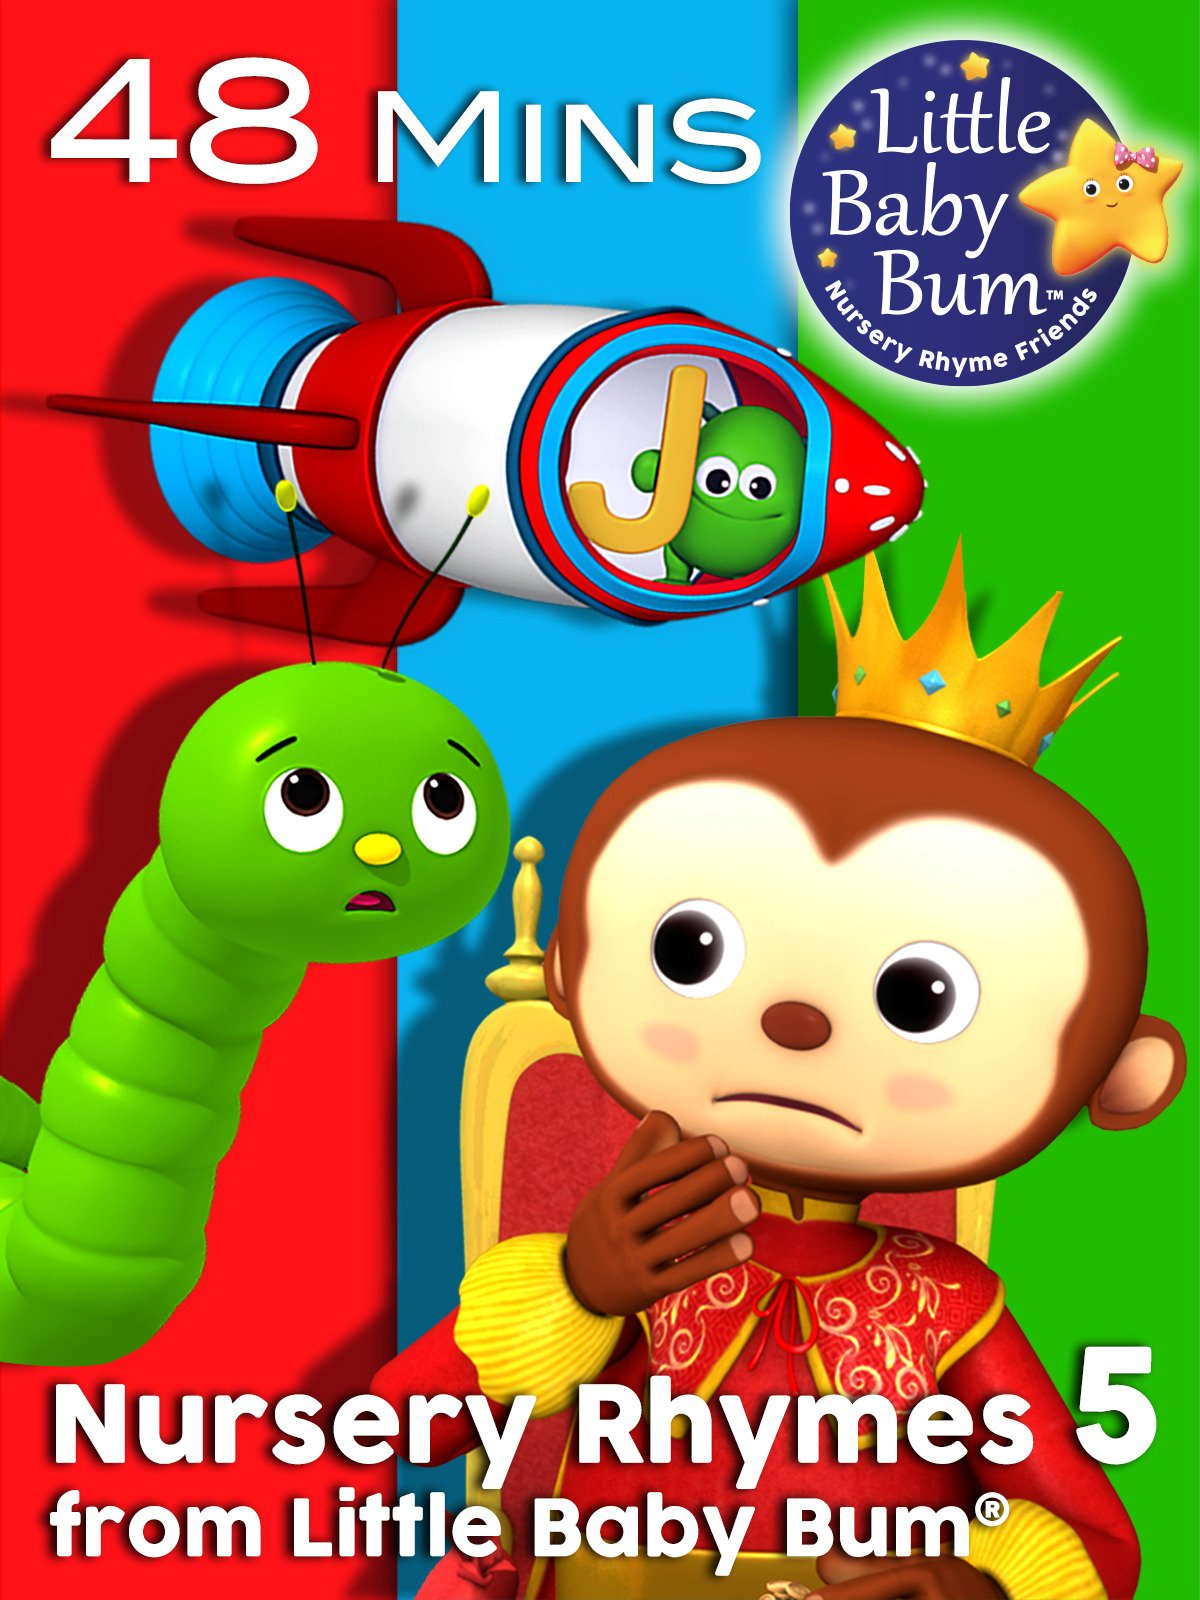 Nursery Rhymes Volume 5 by Little Baby Bum on Amazon Prime Instant Video UK